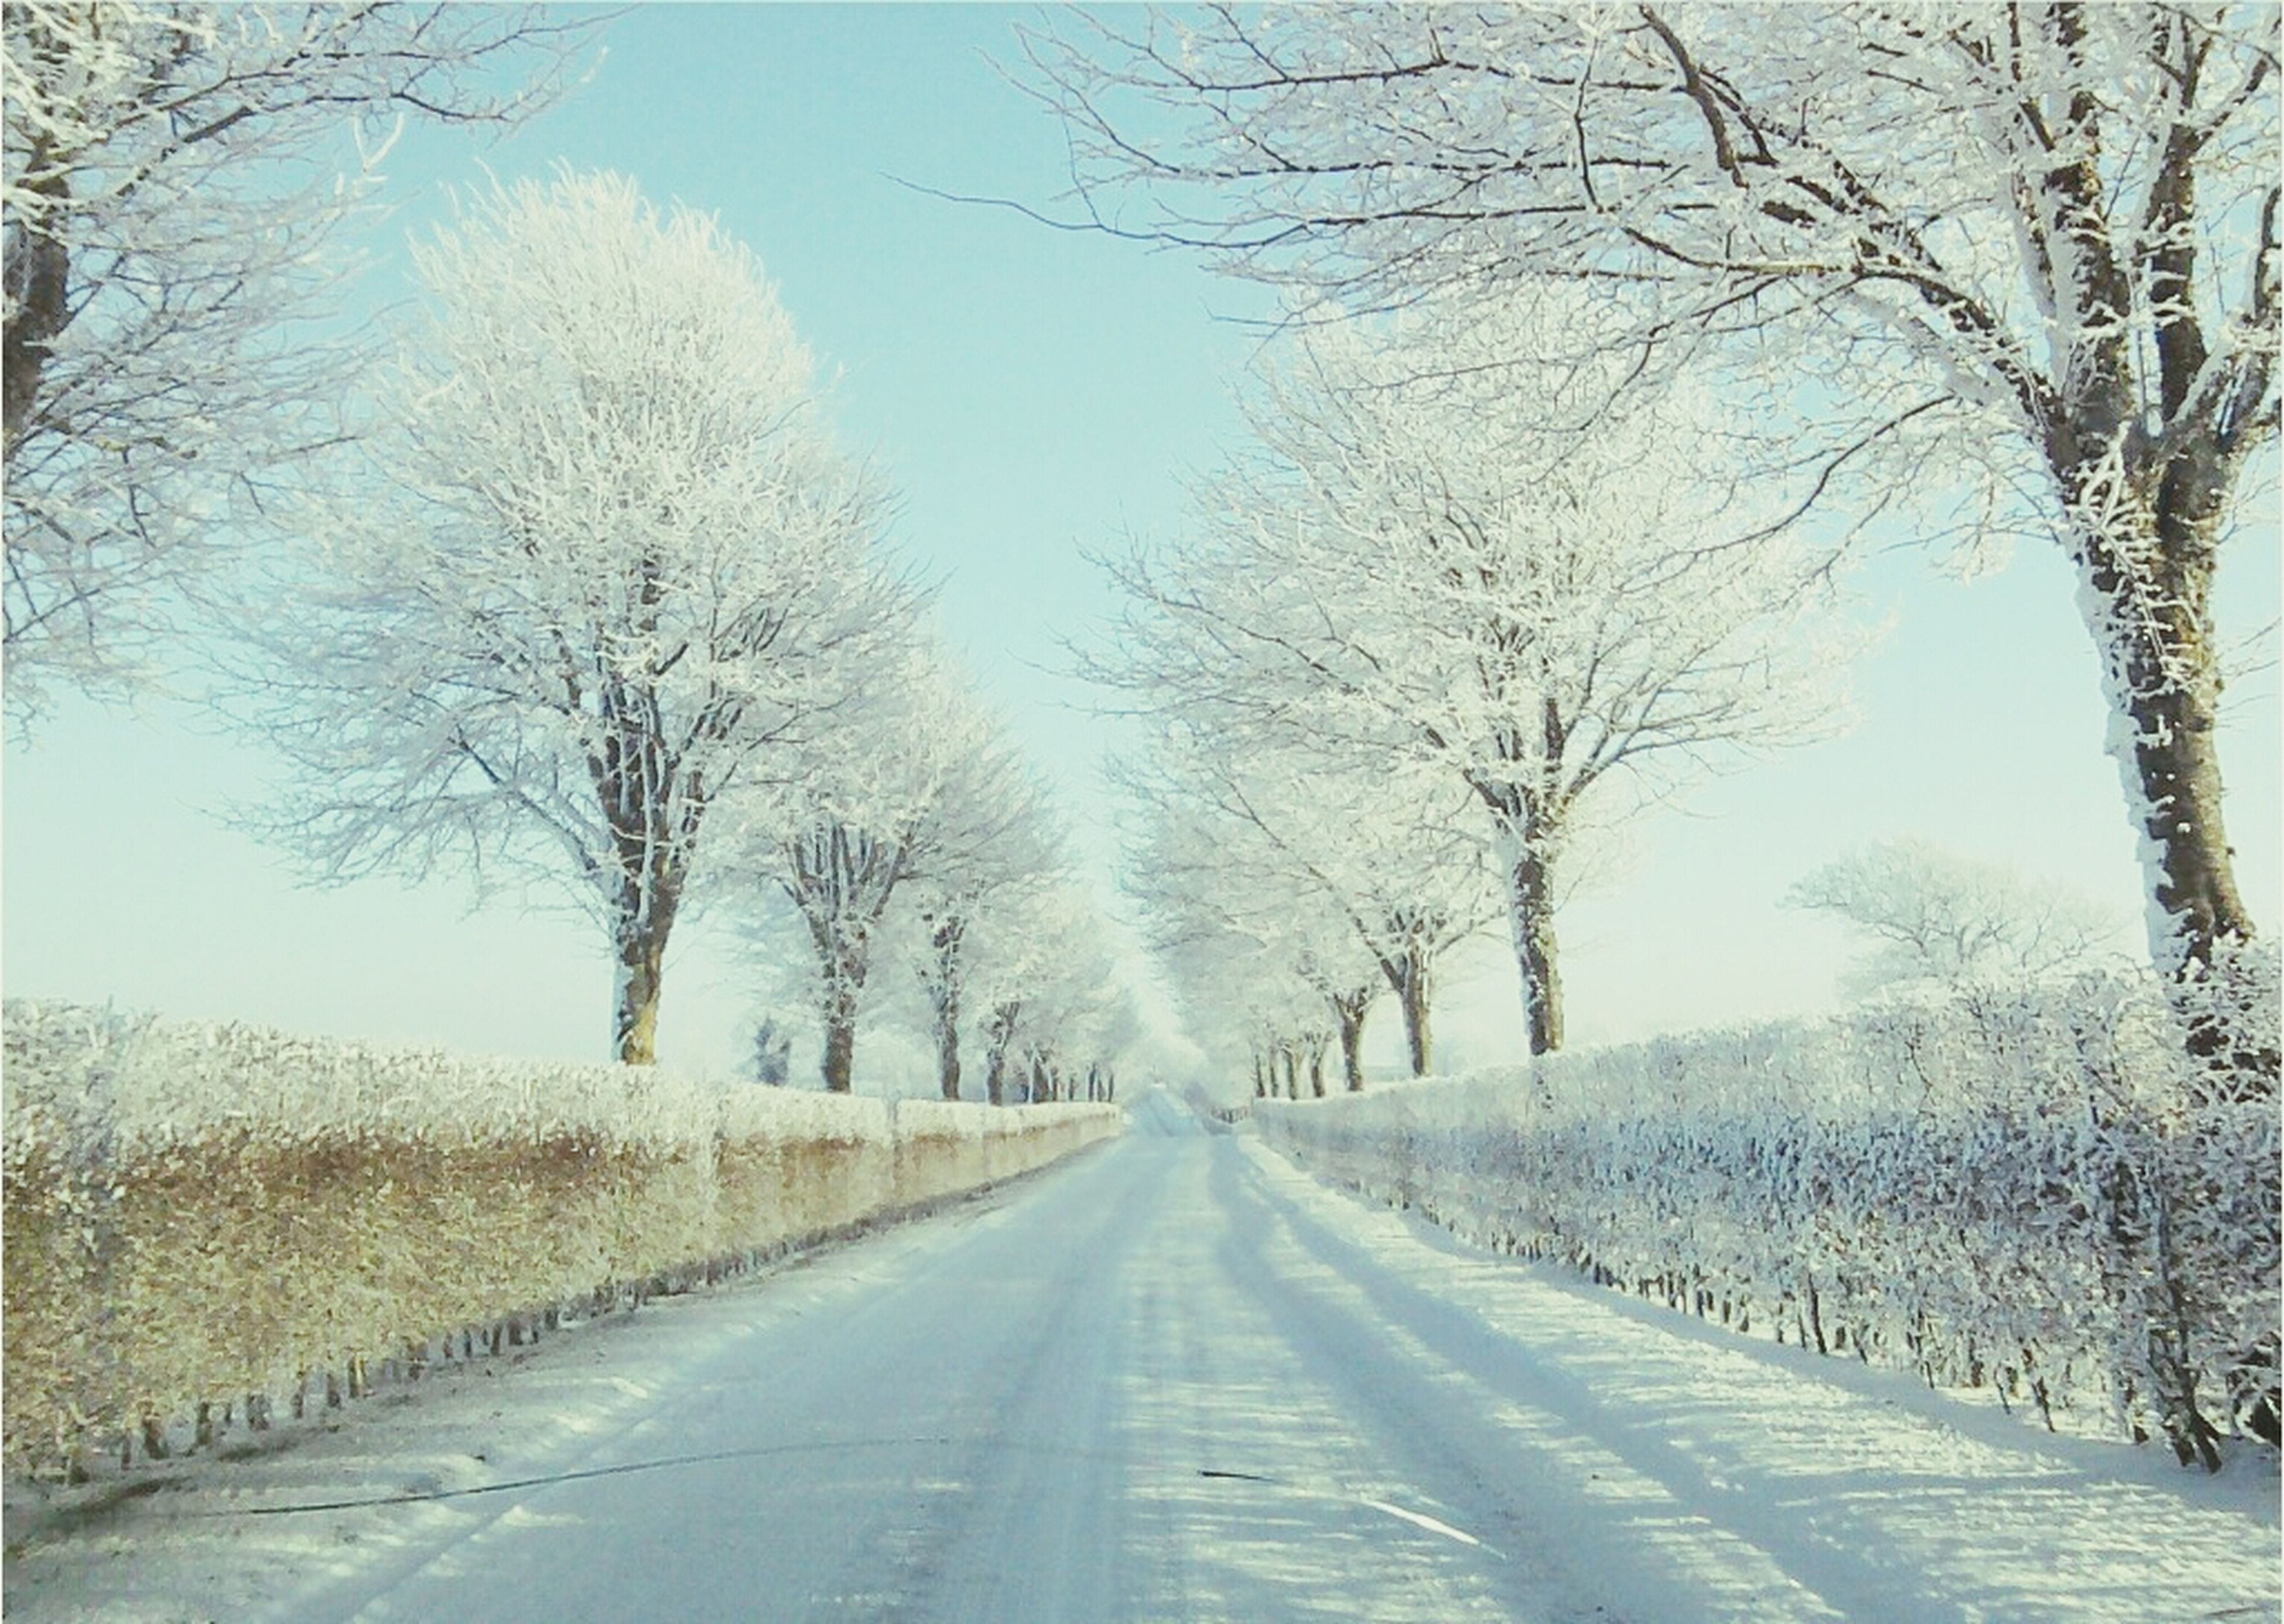 the way forward, diminishing perspective, bare tree, tree, vanishing point, transportation, road, country road, nature, branch, treelined, tranquility, winter, clear sky, empty road, tranquil scene, long, weather, cold temperature, snow